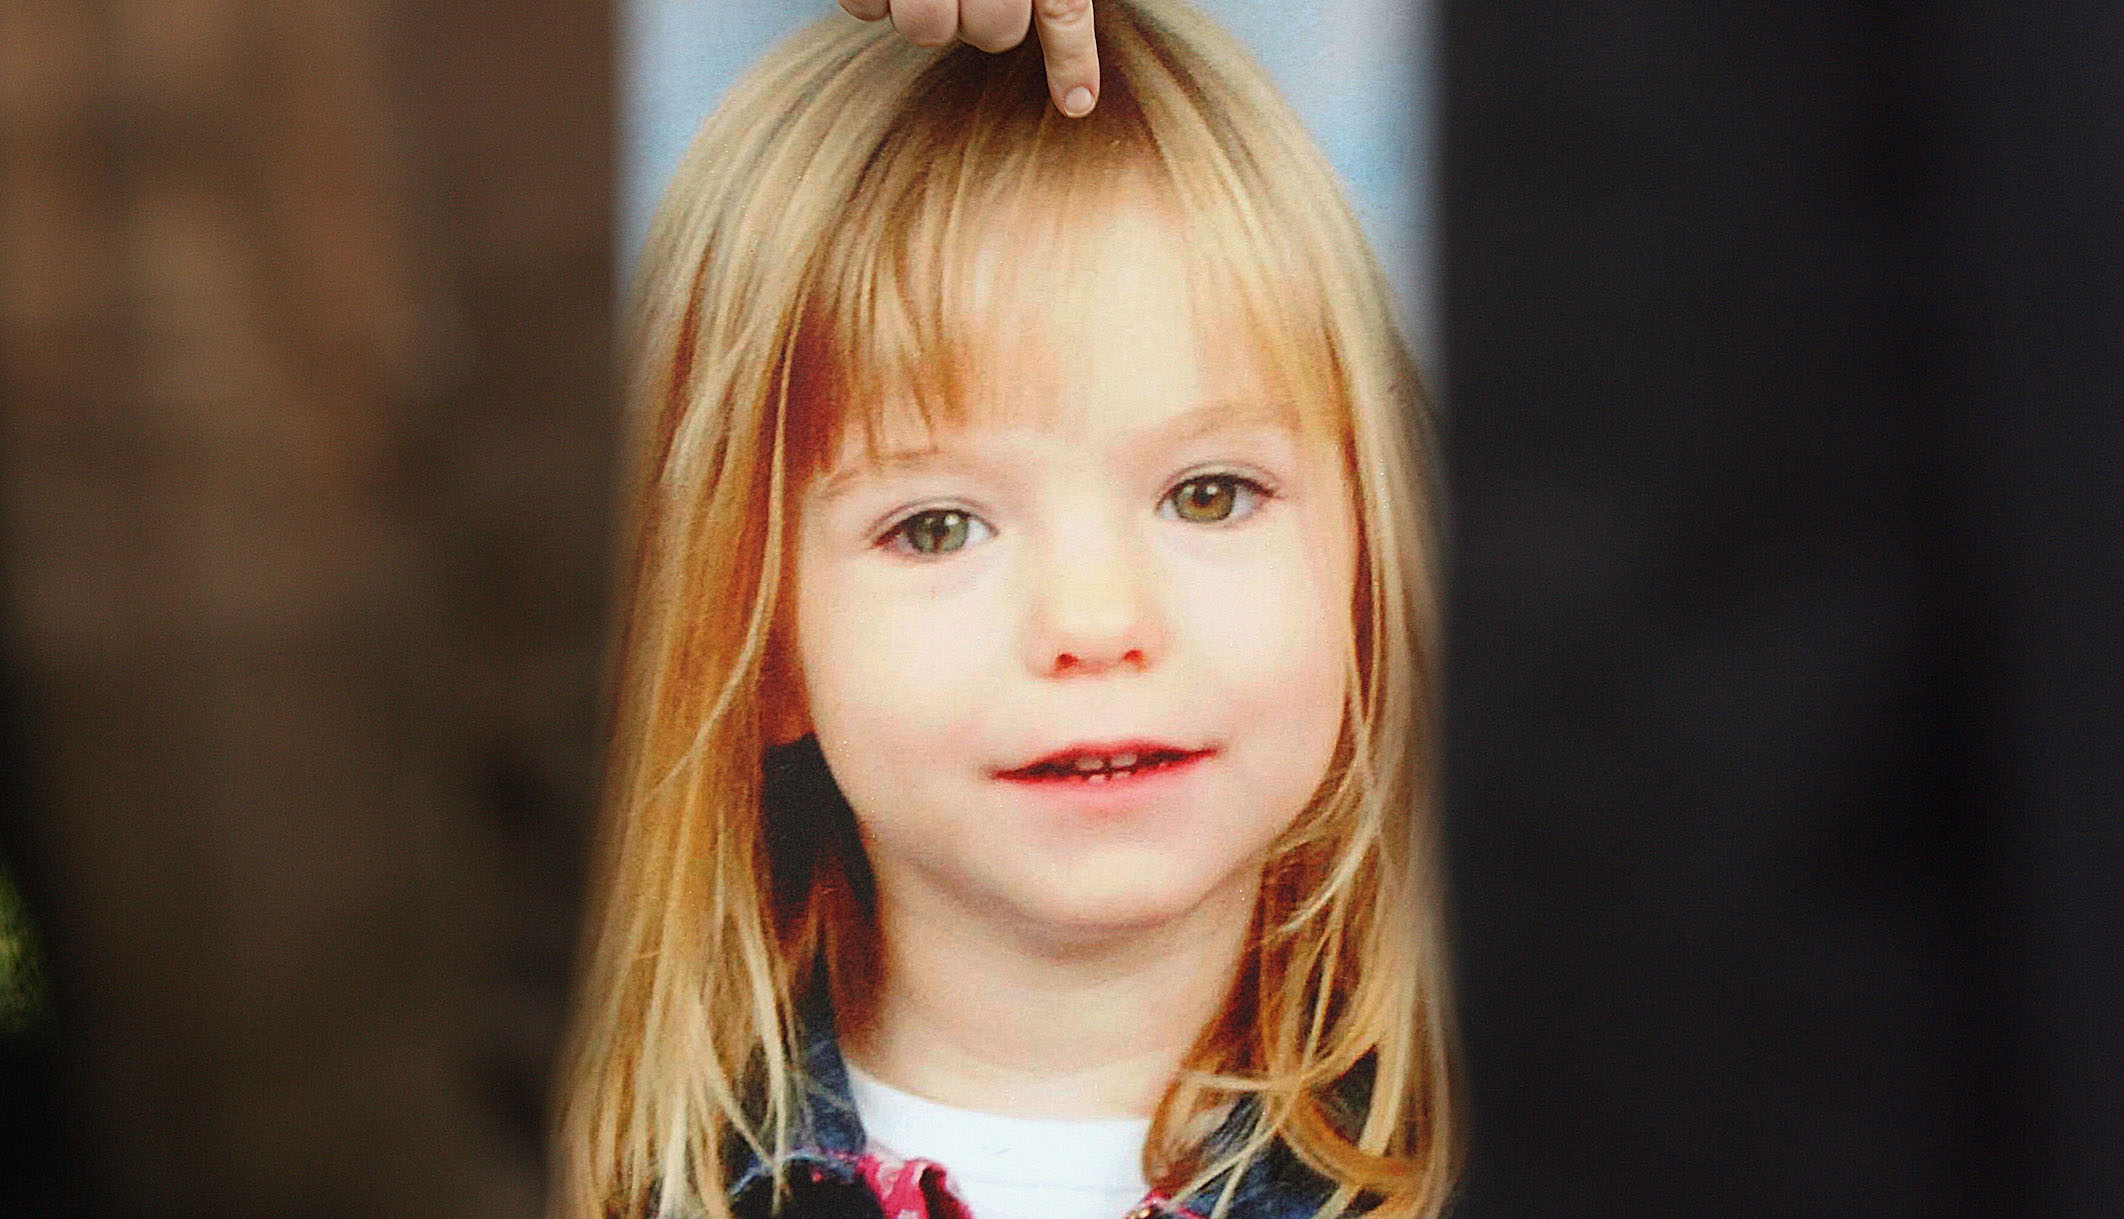 Photo of missing toddler Madeleine McCann is held by her aunt Philomena McCann